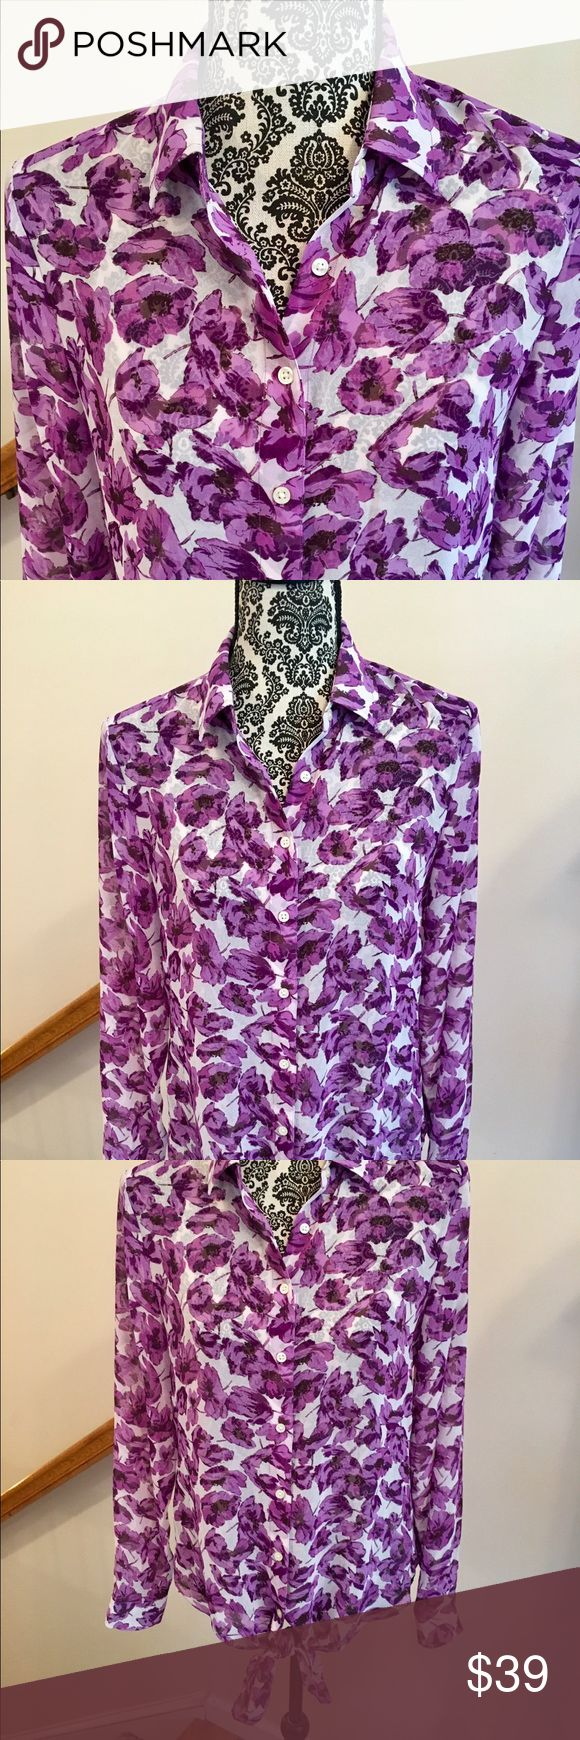 Banana Republic Front Tie Sheer Blouse🎉 Fabulous Banana Republic button front sheer blouse with front tie at the bottom.  100% Polyester.  White background with beautiful purple flower pattern.  Great with a purple cami underneath. Worn only twice. Excellent condition. Banana Republic Tops